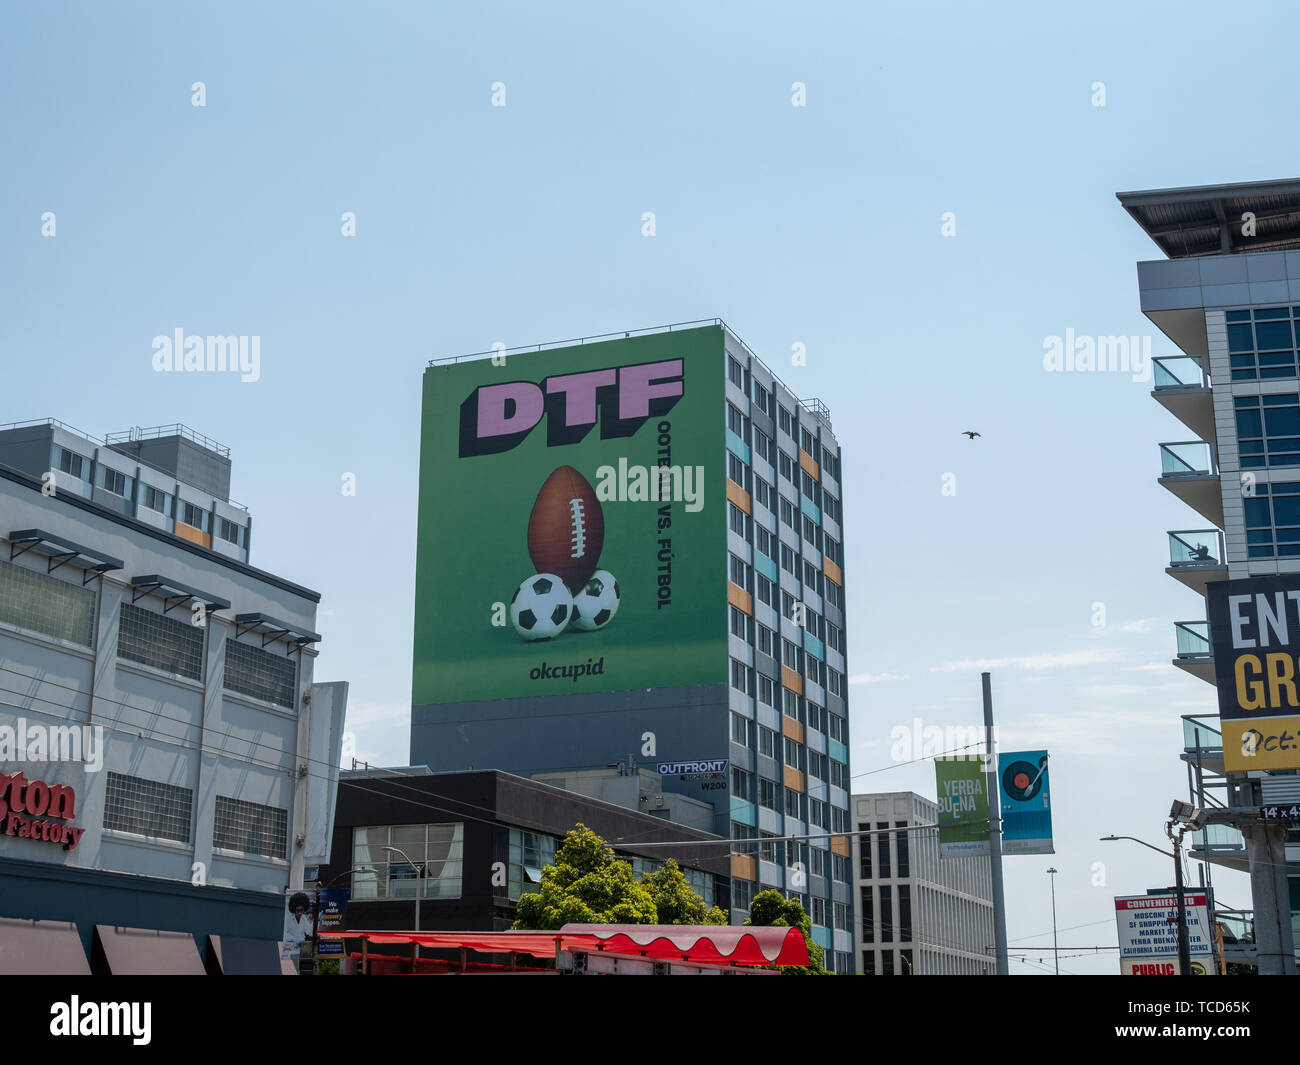 Dating dtf